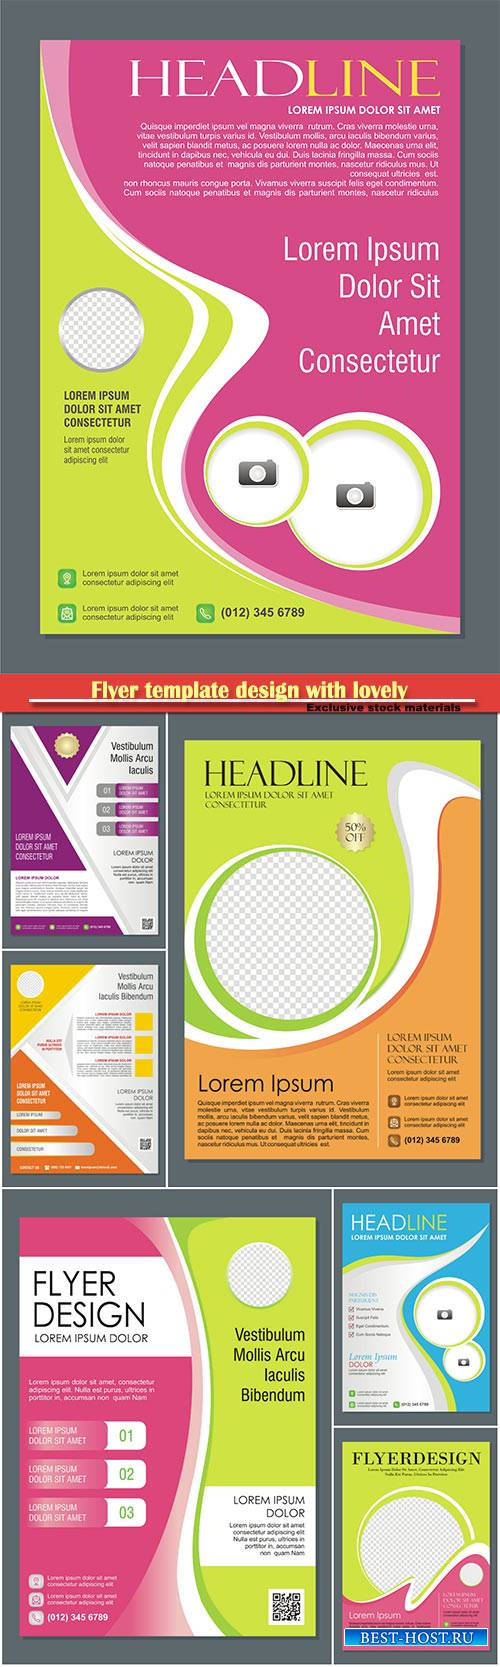 Flyer template design with lovely and stylish design